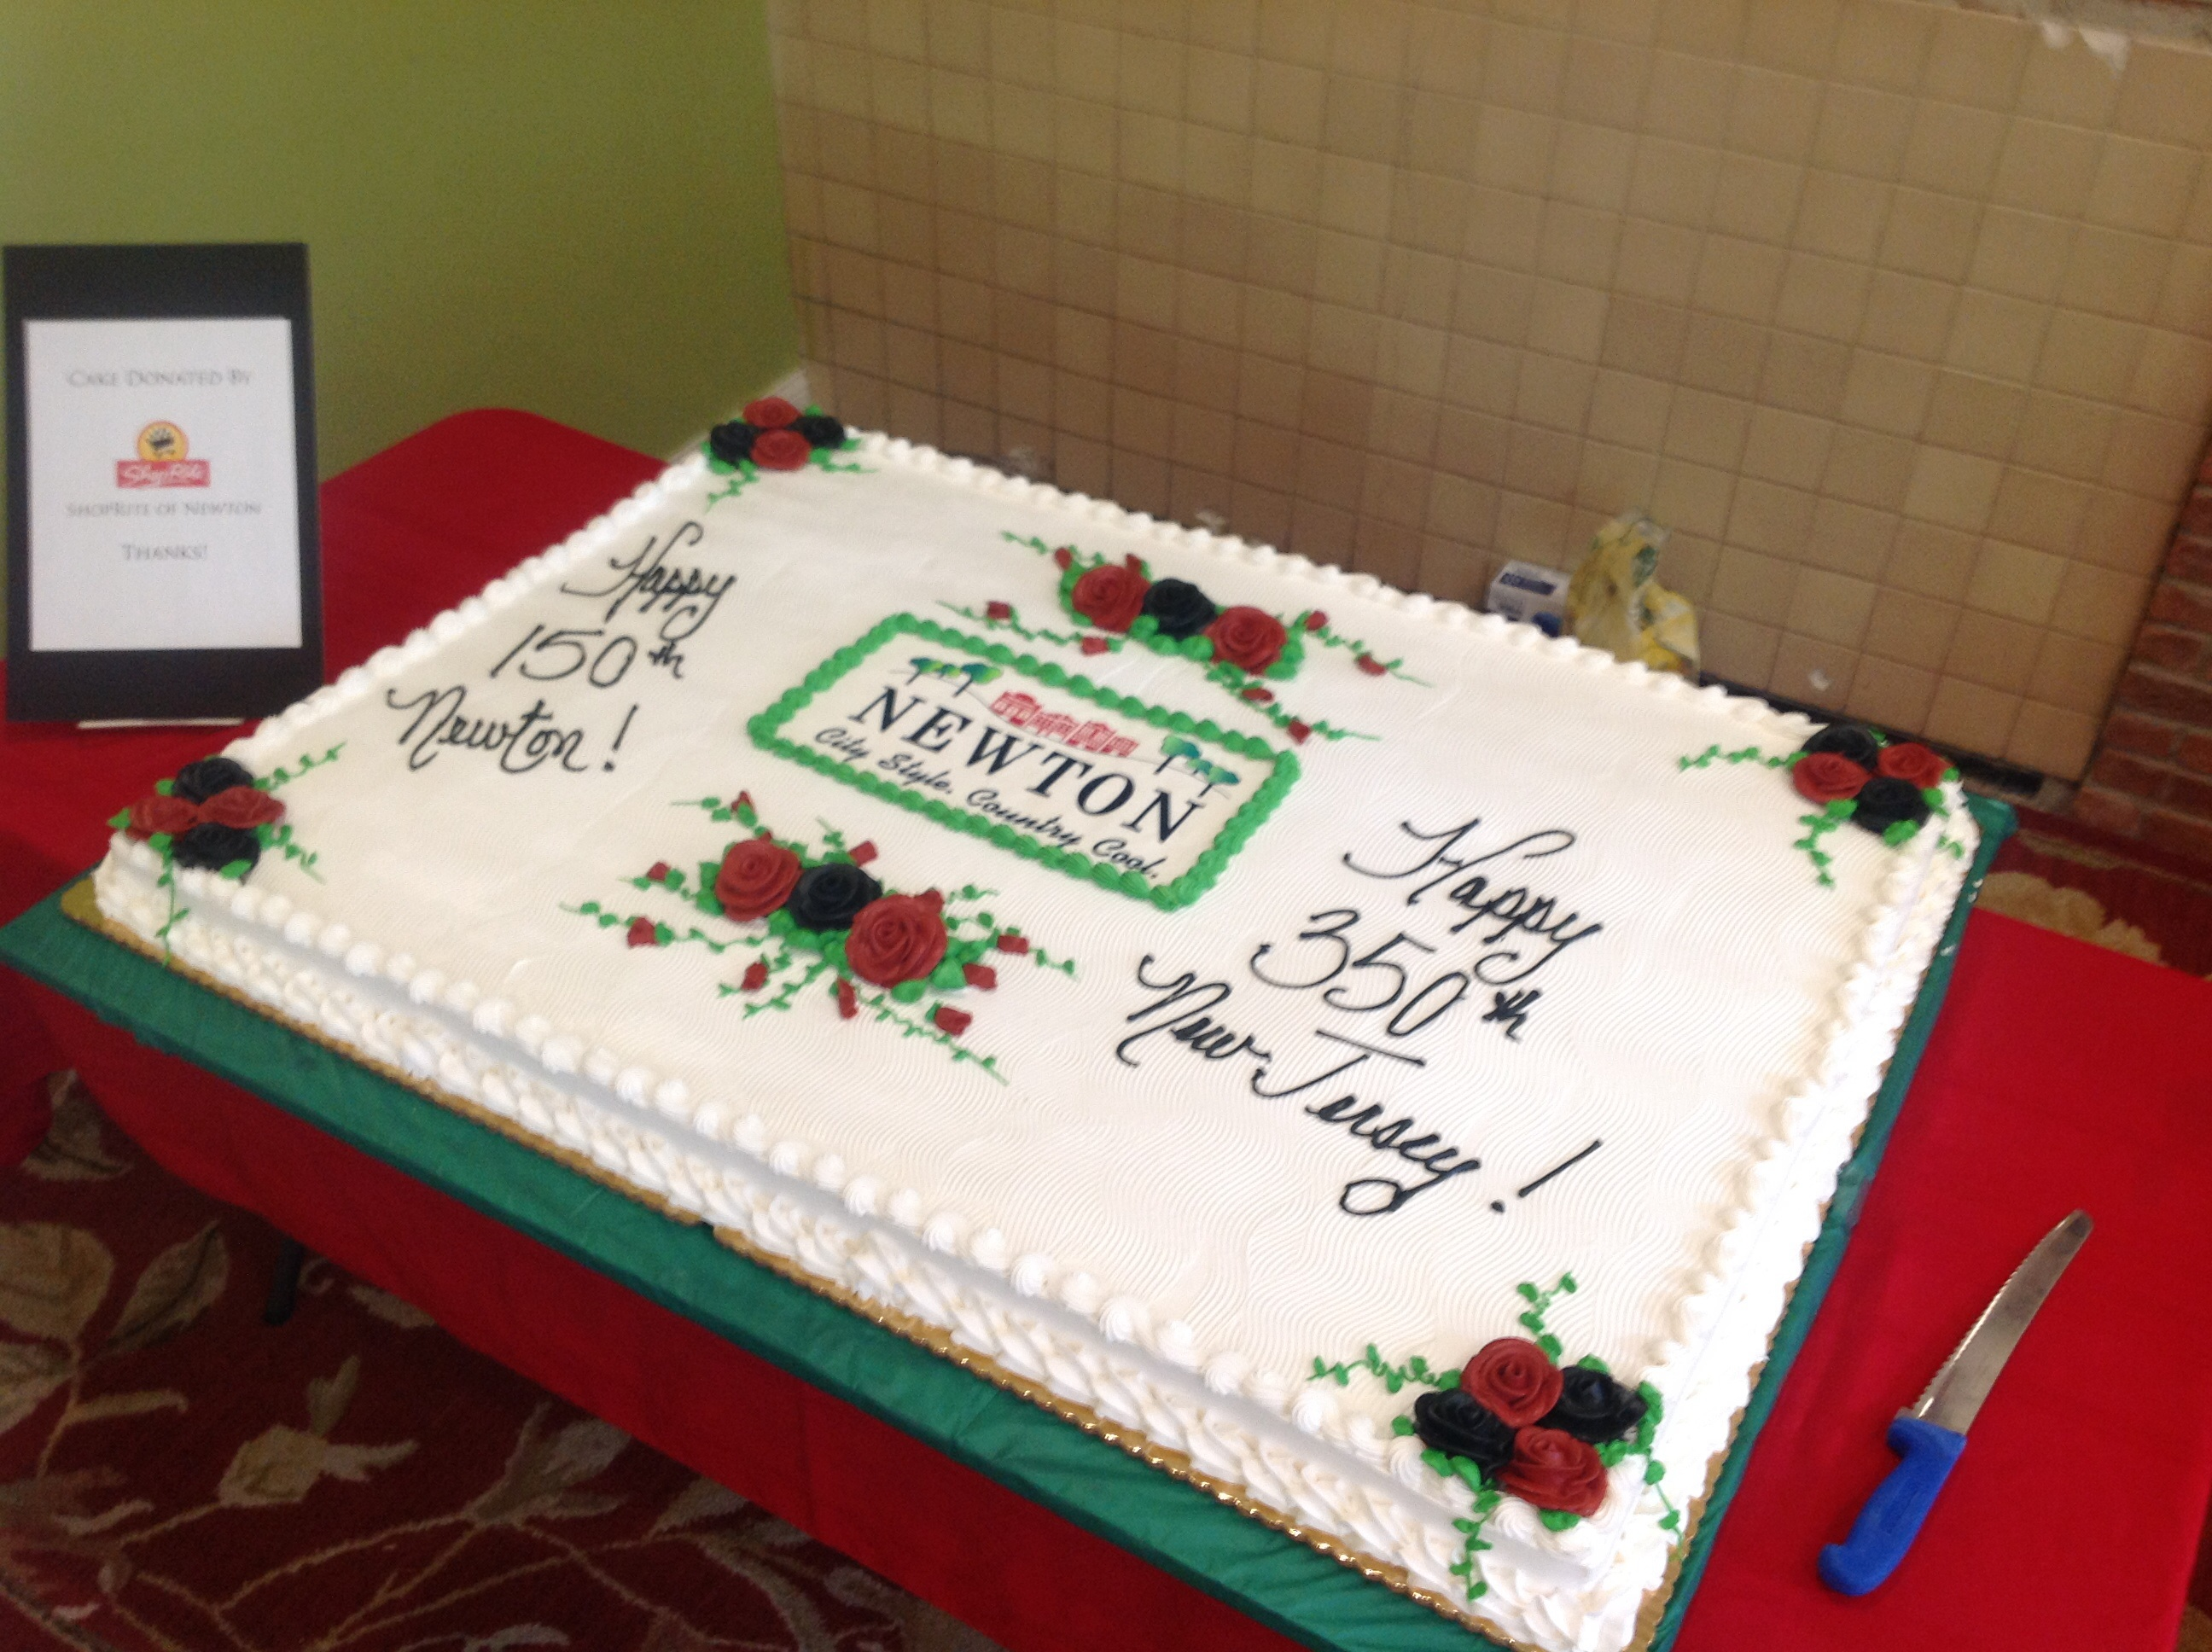 Cake to celebrate the unveiling of the new logo.